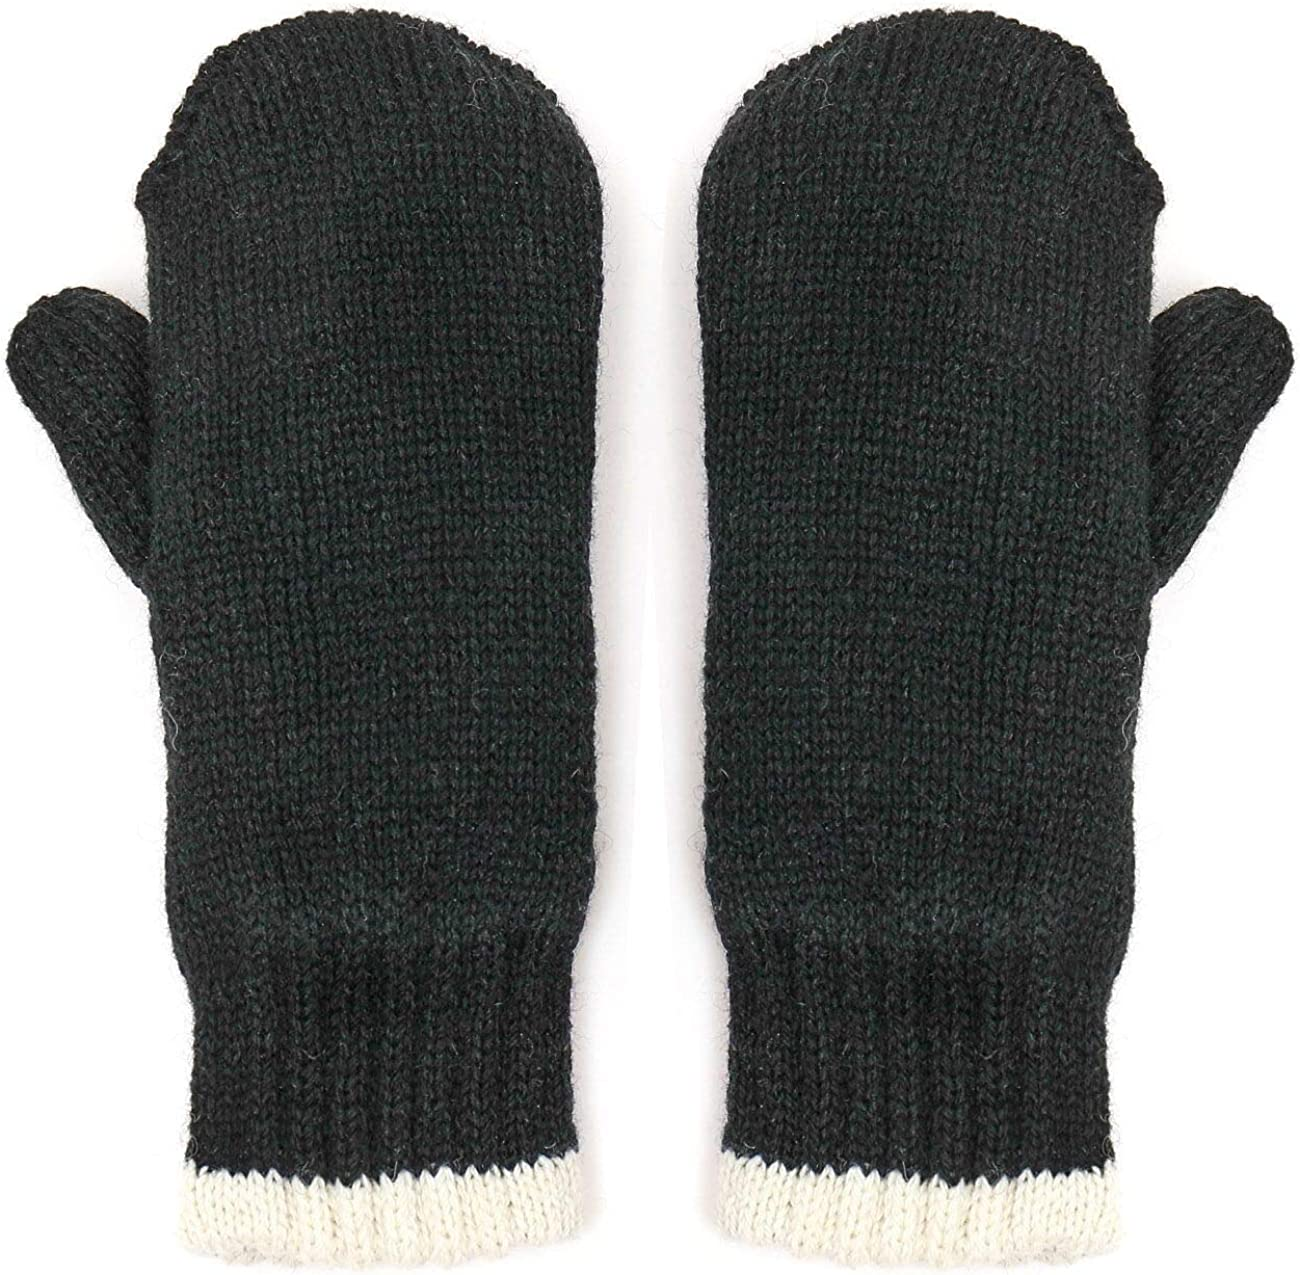 Metog 3M Thinsulate Type Mittens Heavy Double Ragg Winter Cozy Wool Knit Gloves